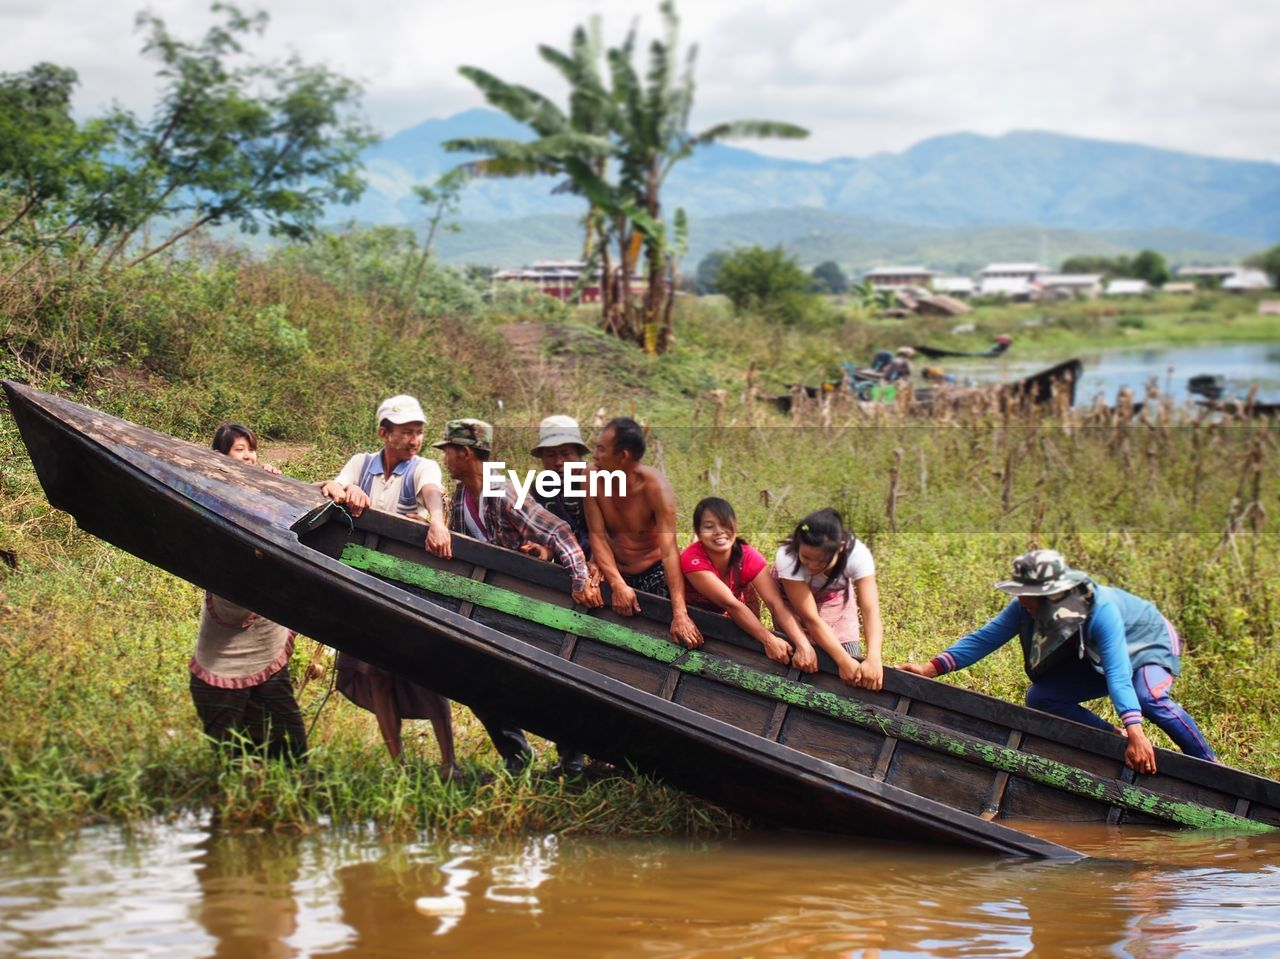 PEOPLE IN BOAT ON RIVER AGAINST SKY